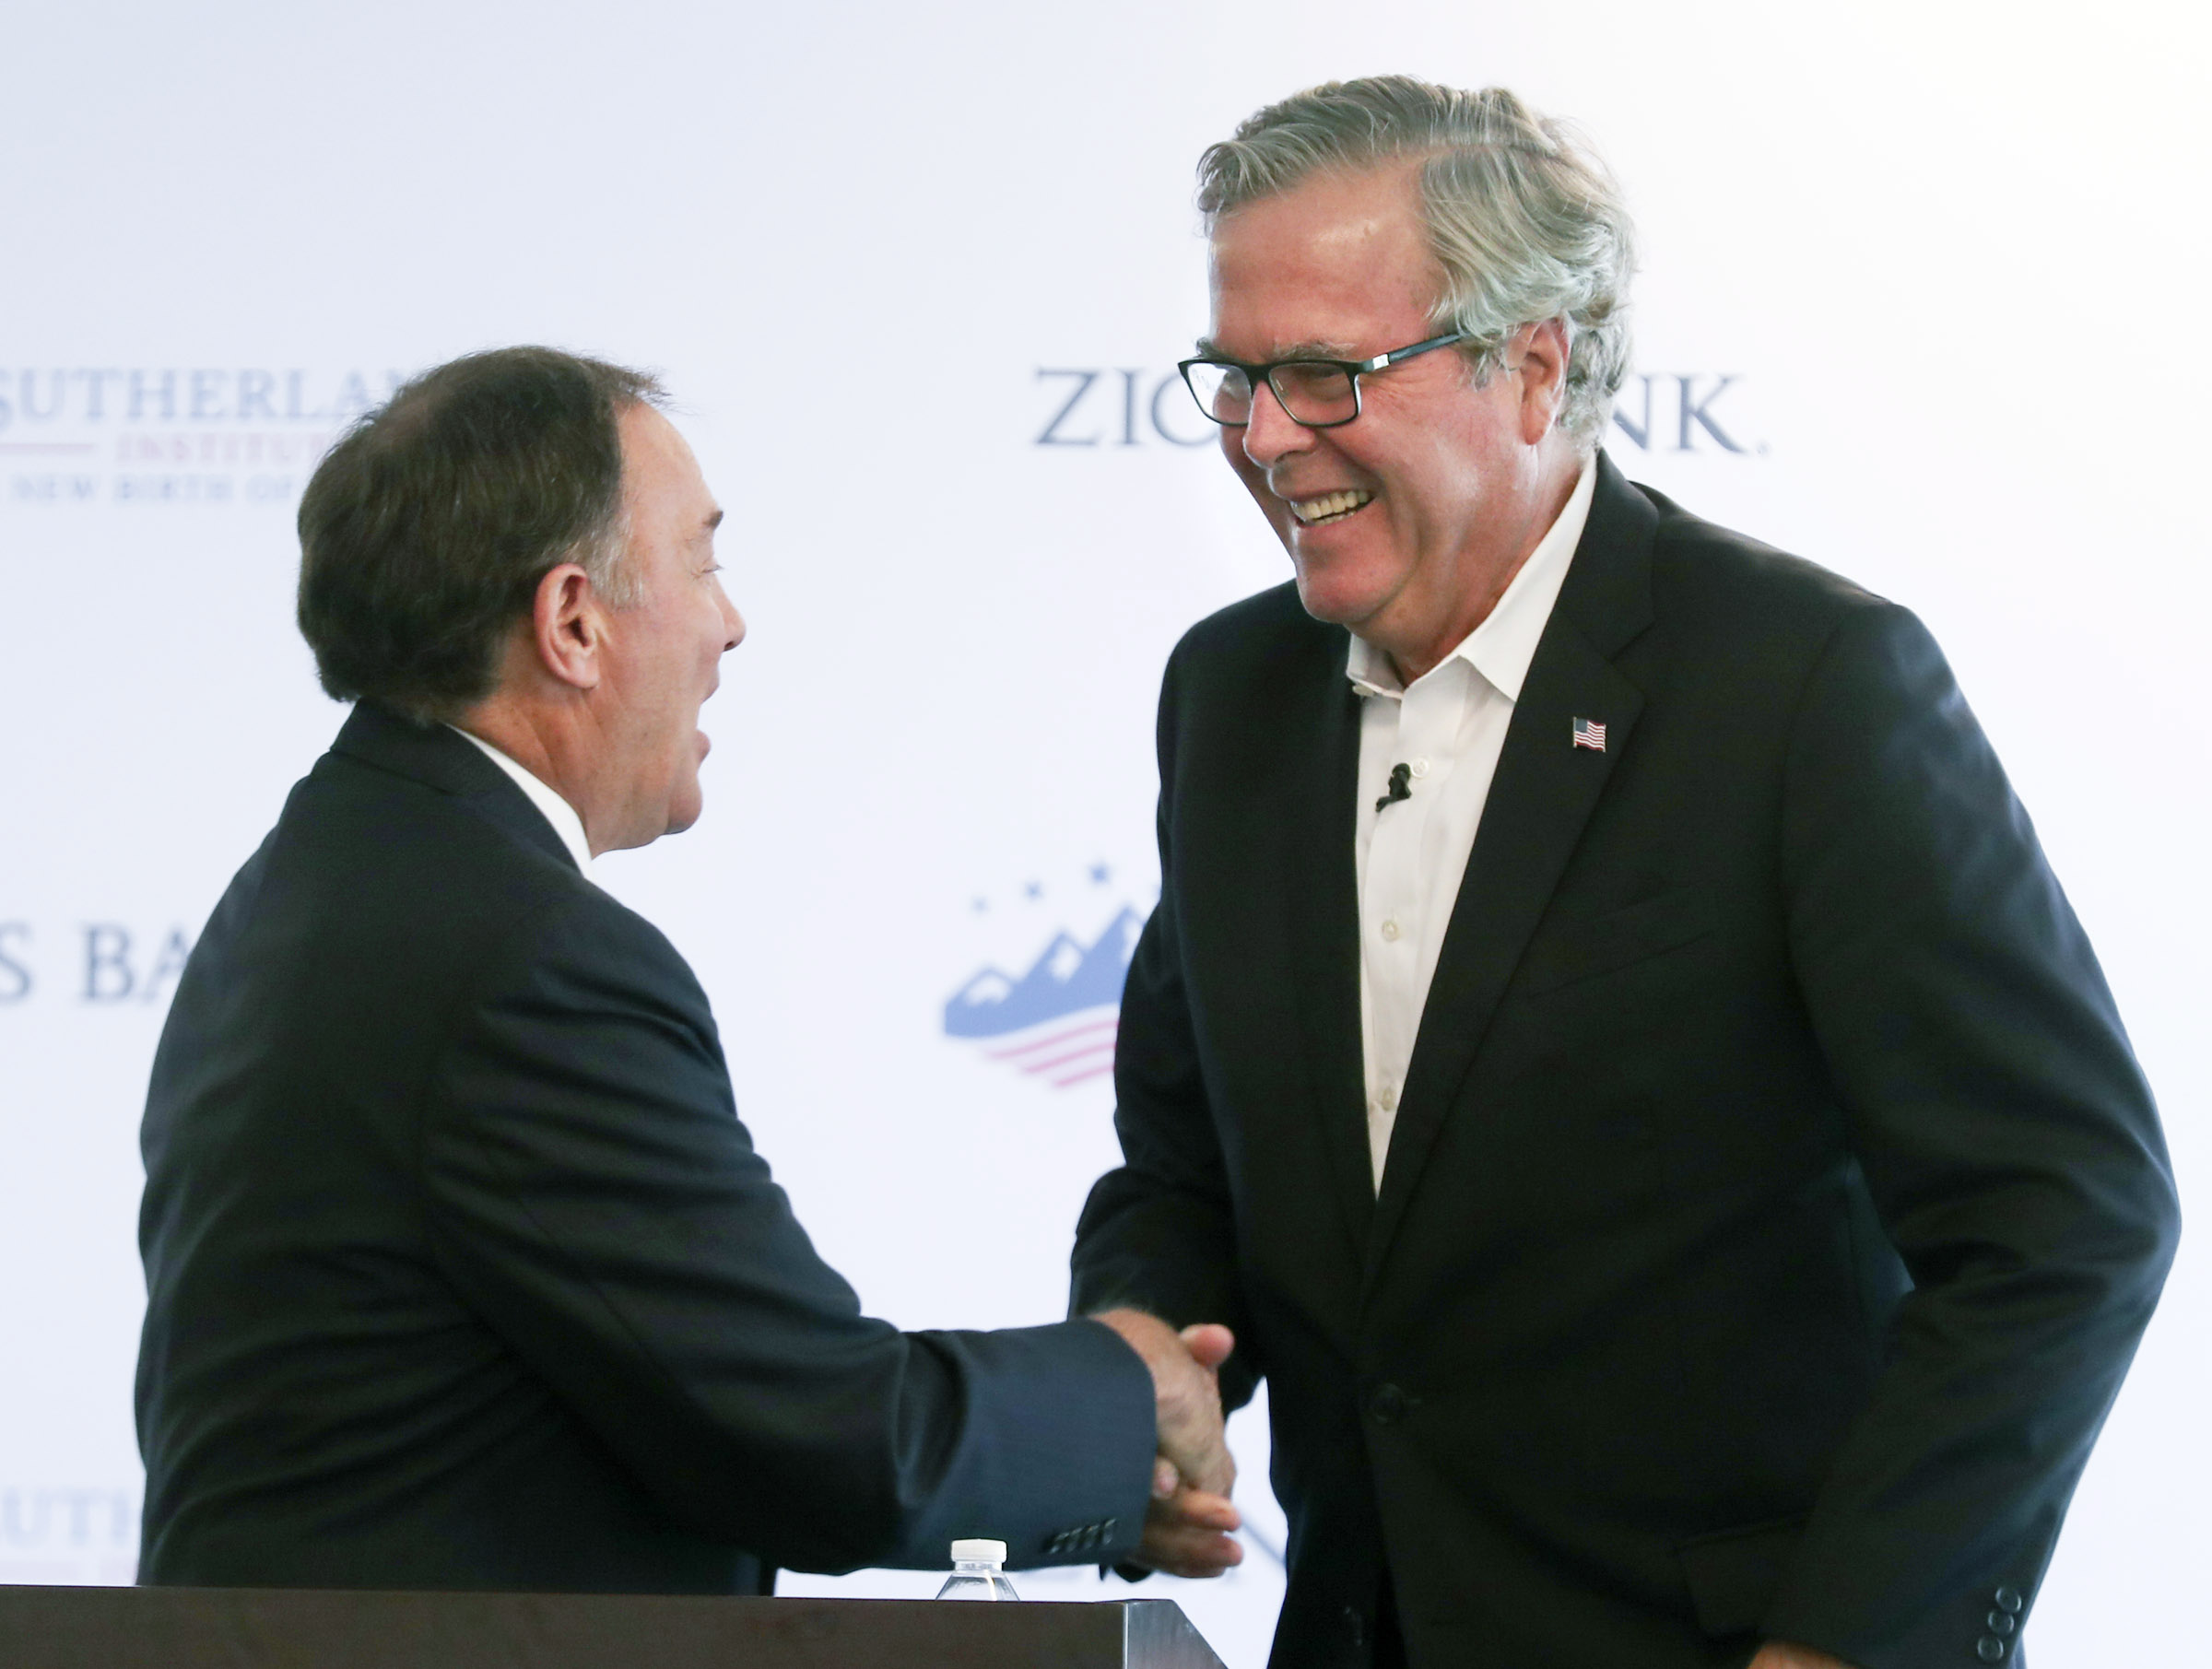 Gov. Gary Herbert, left, shakes hands with former Florida Gov. Jeb Bush, right, after Herbert introduced Bush at the Sutherland Institute in Salt Lake City on Tuesday, Oct. 22, 2019. Bush talked about the state of education in America and about policies that have the potential to provide innovation in the Utah education system.